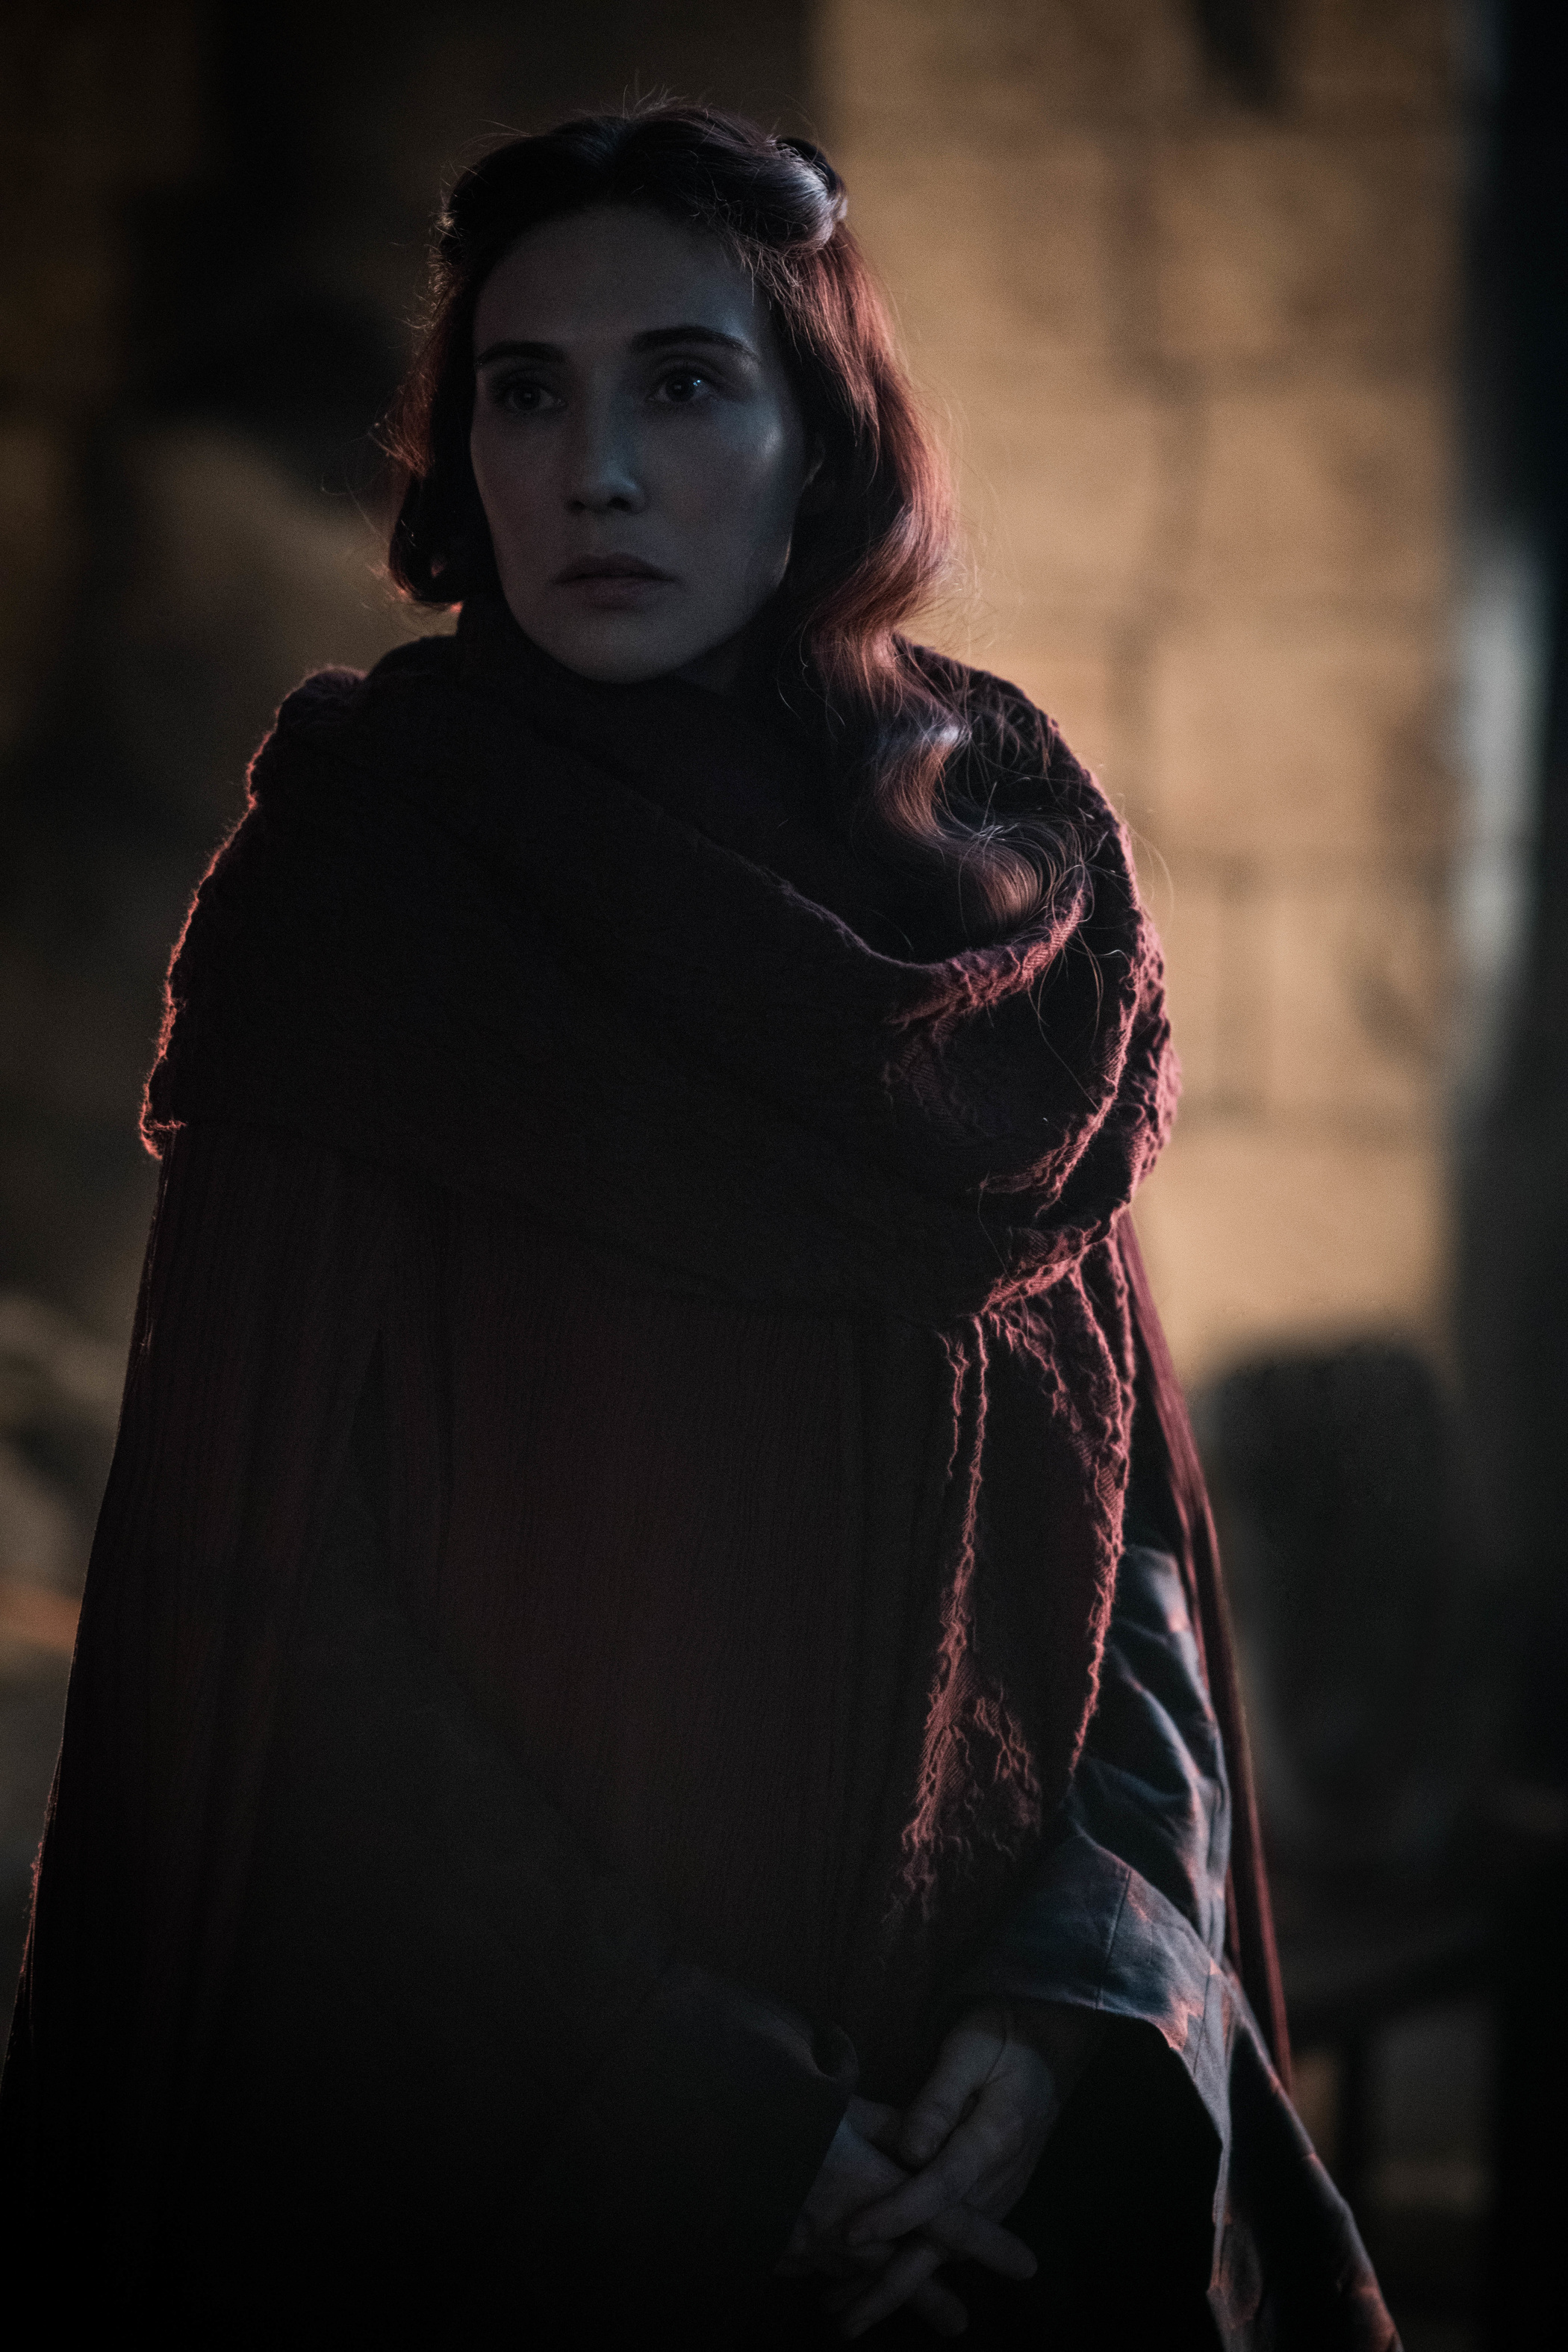 Melisandre makes a surprising return on Game of Thrones season 8 episode 3 before the Battle of Winterfell.